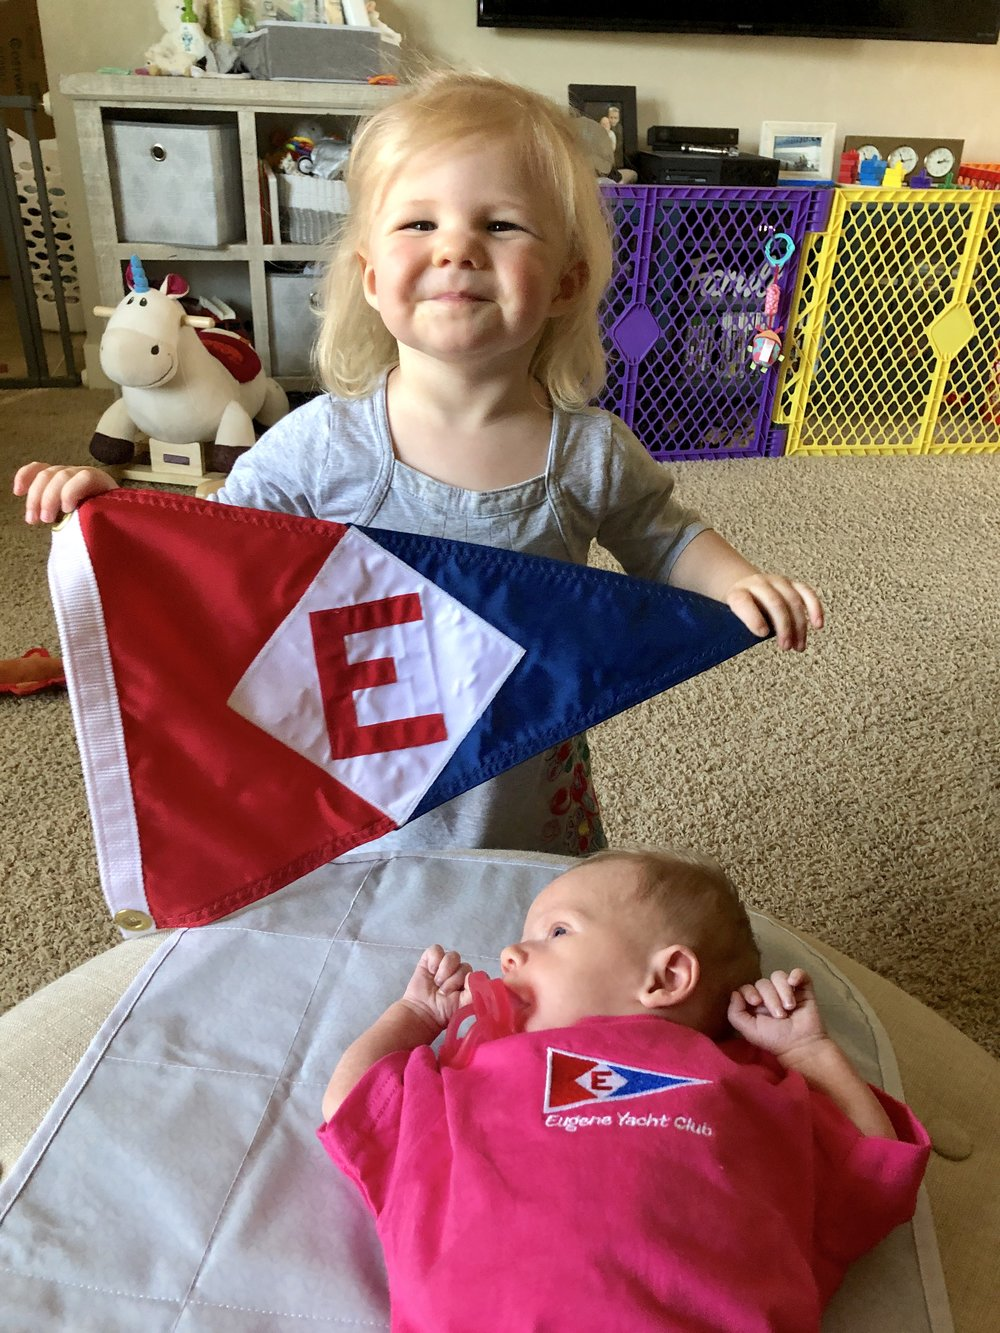 Zoey shows off her EYC burgee and her new little sister Natalie at home in Cottage Grove, Oregon.